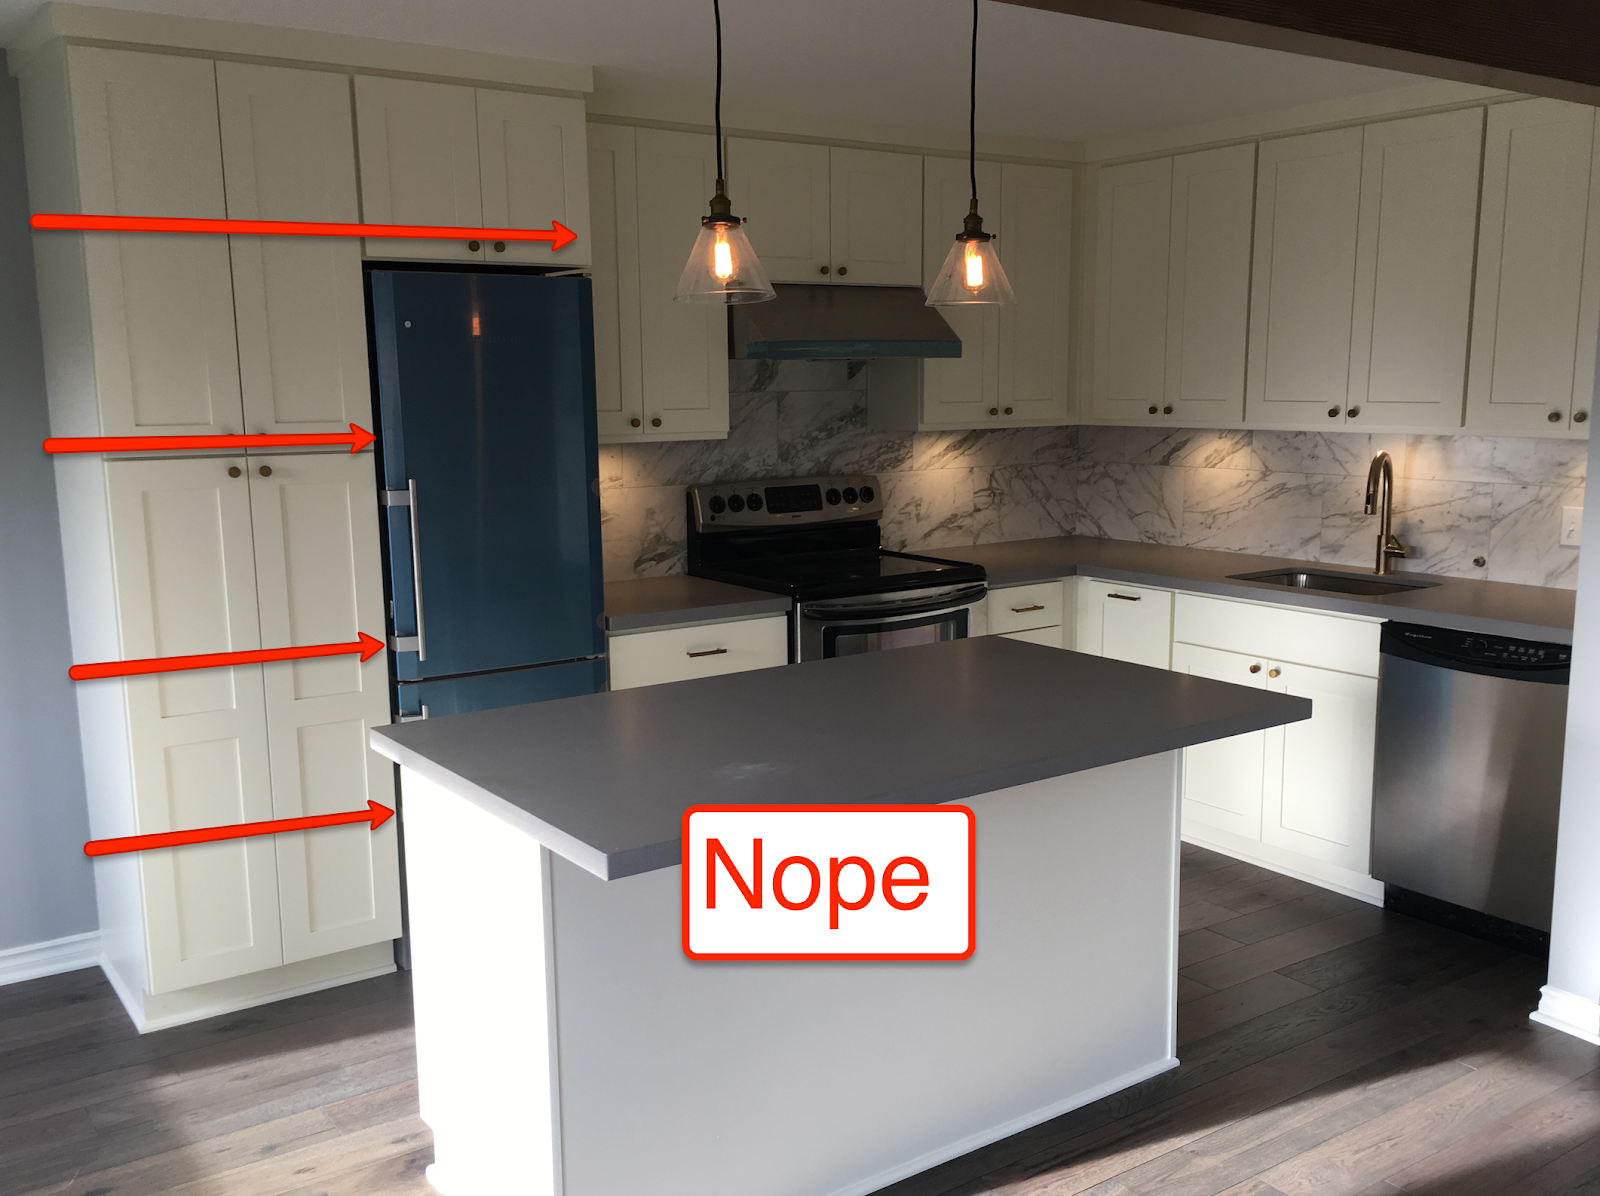 Estimating kitchen remodel costs with a remodel calculator   Real ...